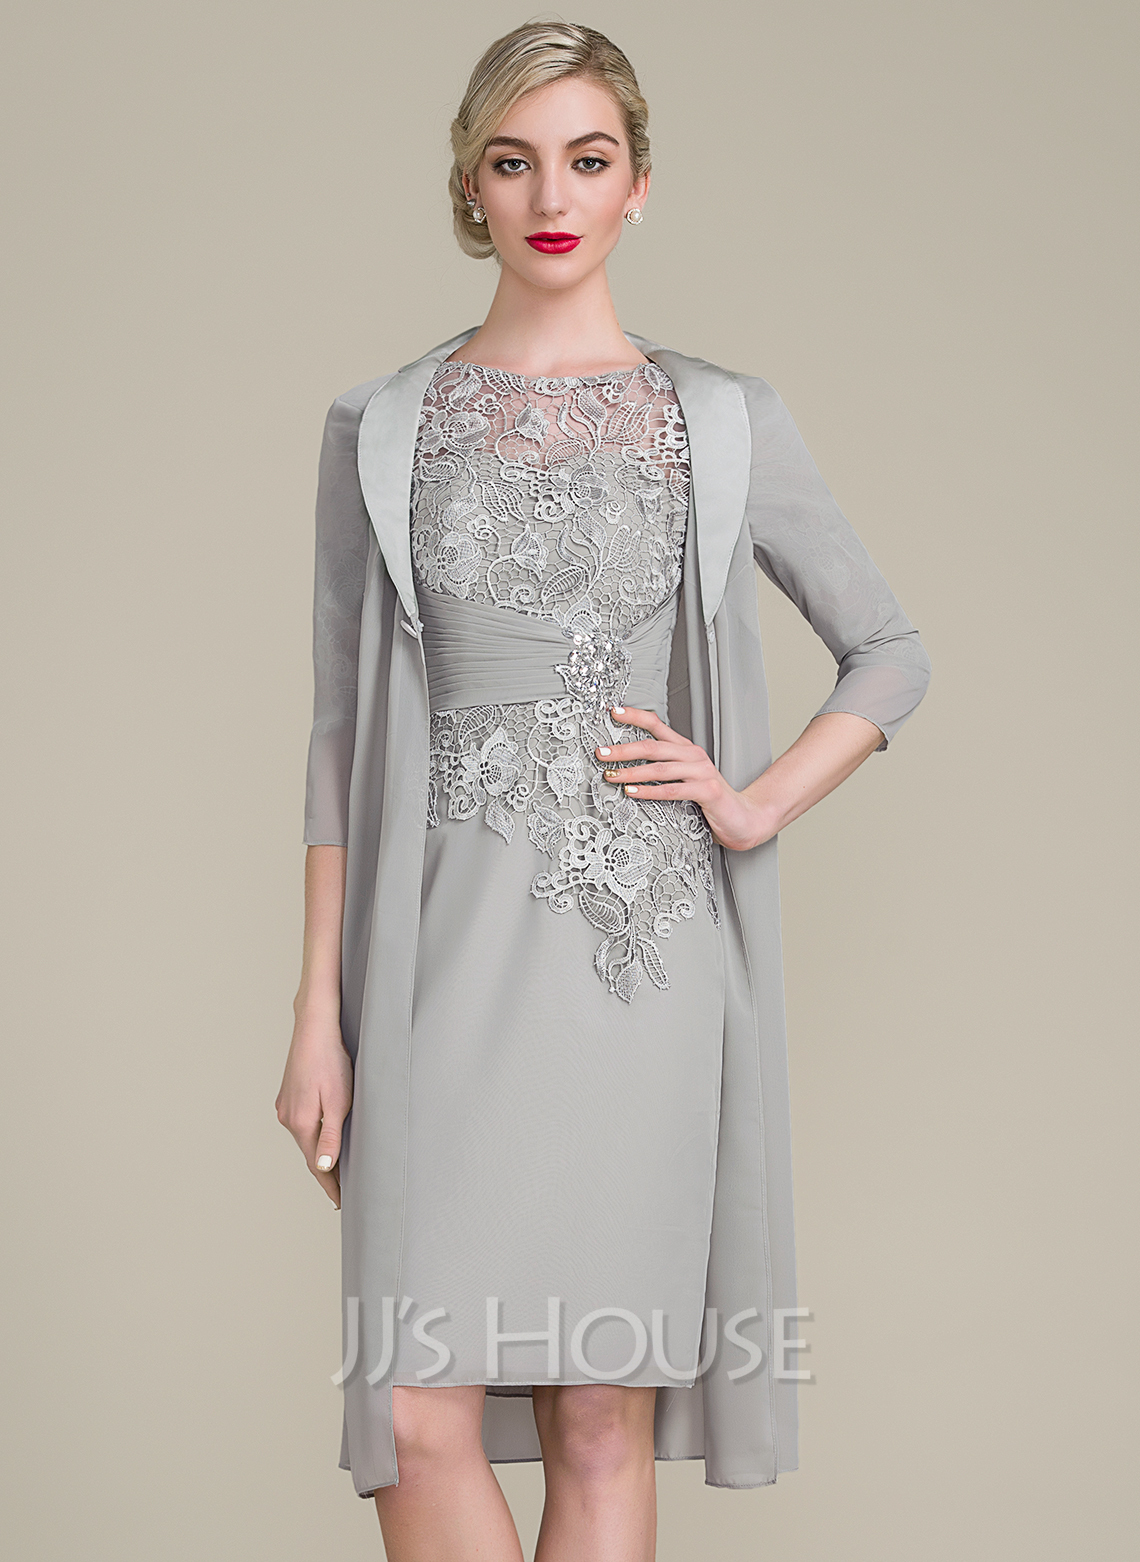 Sheath Column Scoop Neck Knee-Length Chiffon Lace Mother of the Bride Dress  With. Loading zoom 605b064825bb